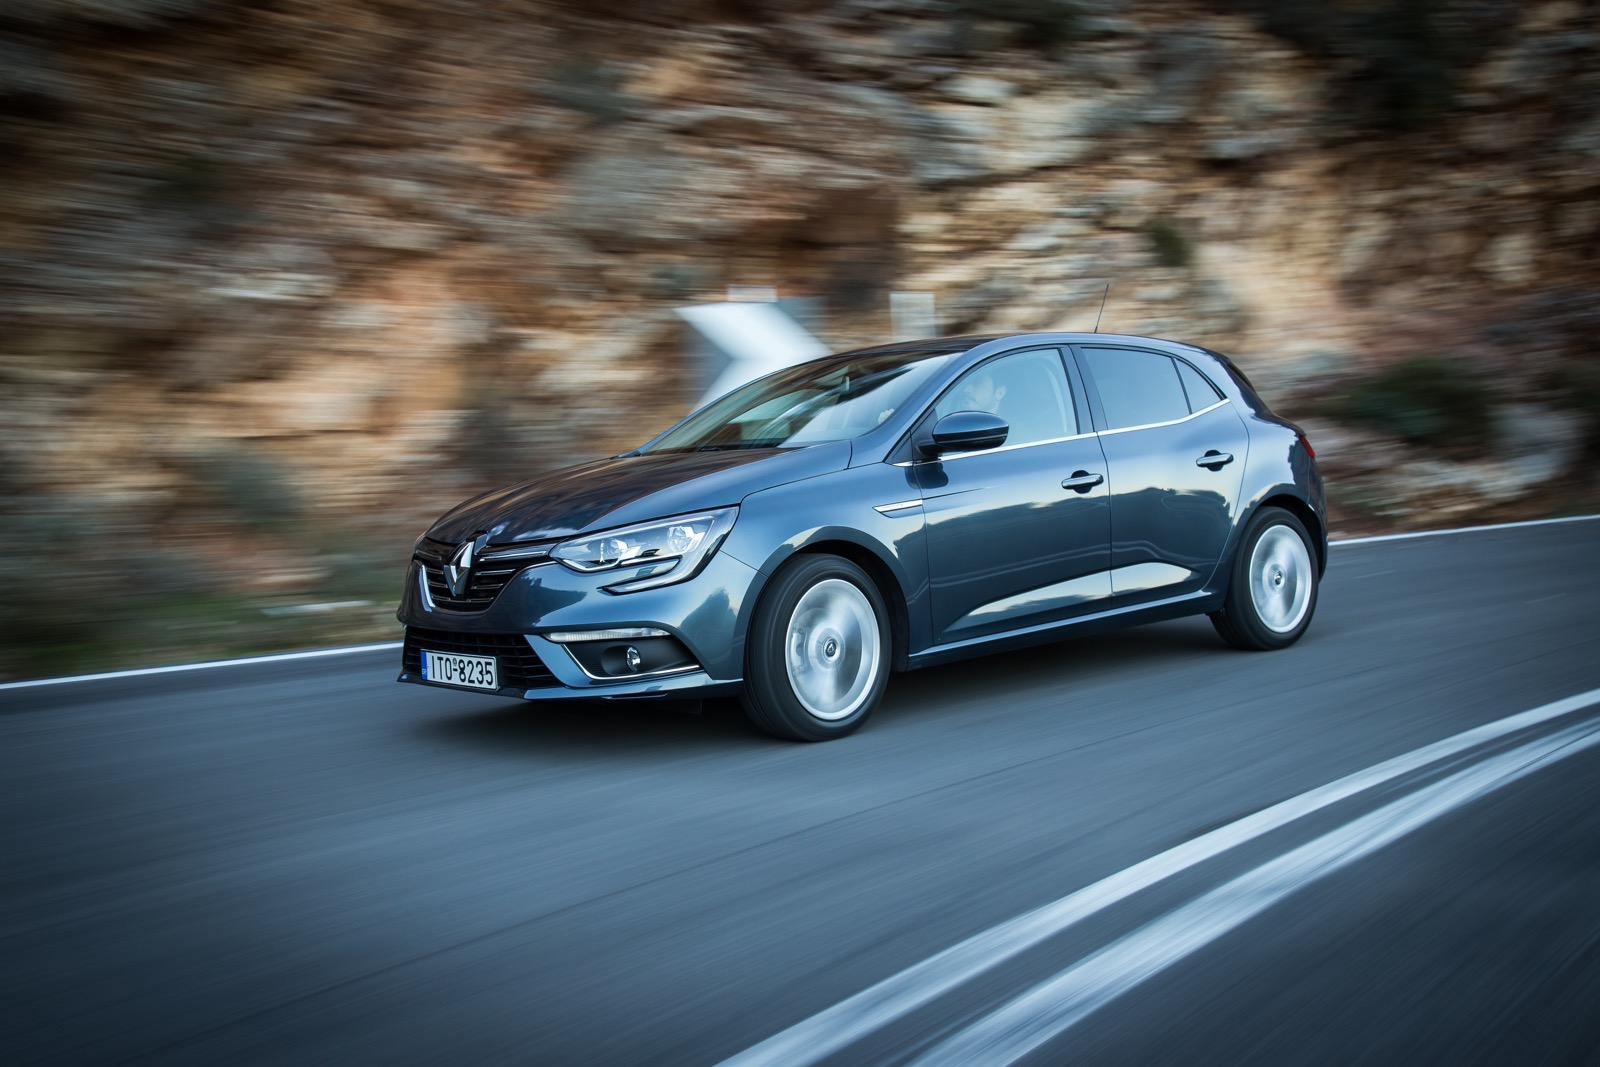 First_Drive_Renault_Megane_89